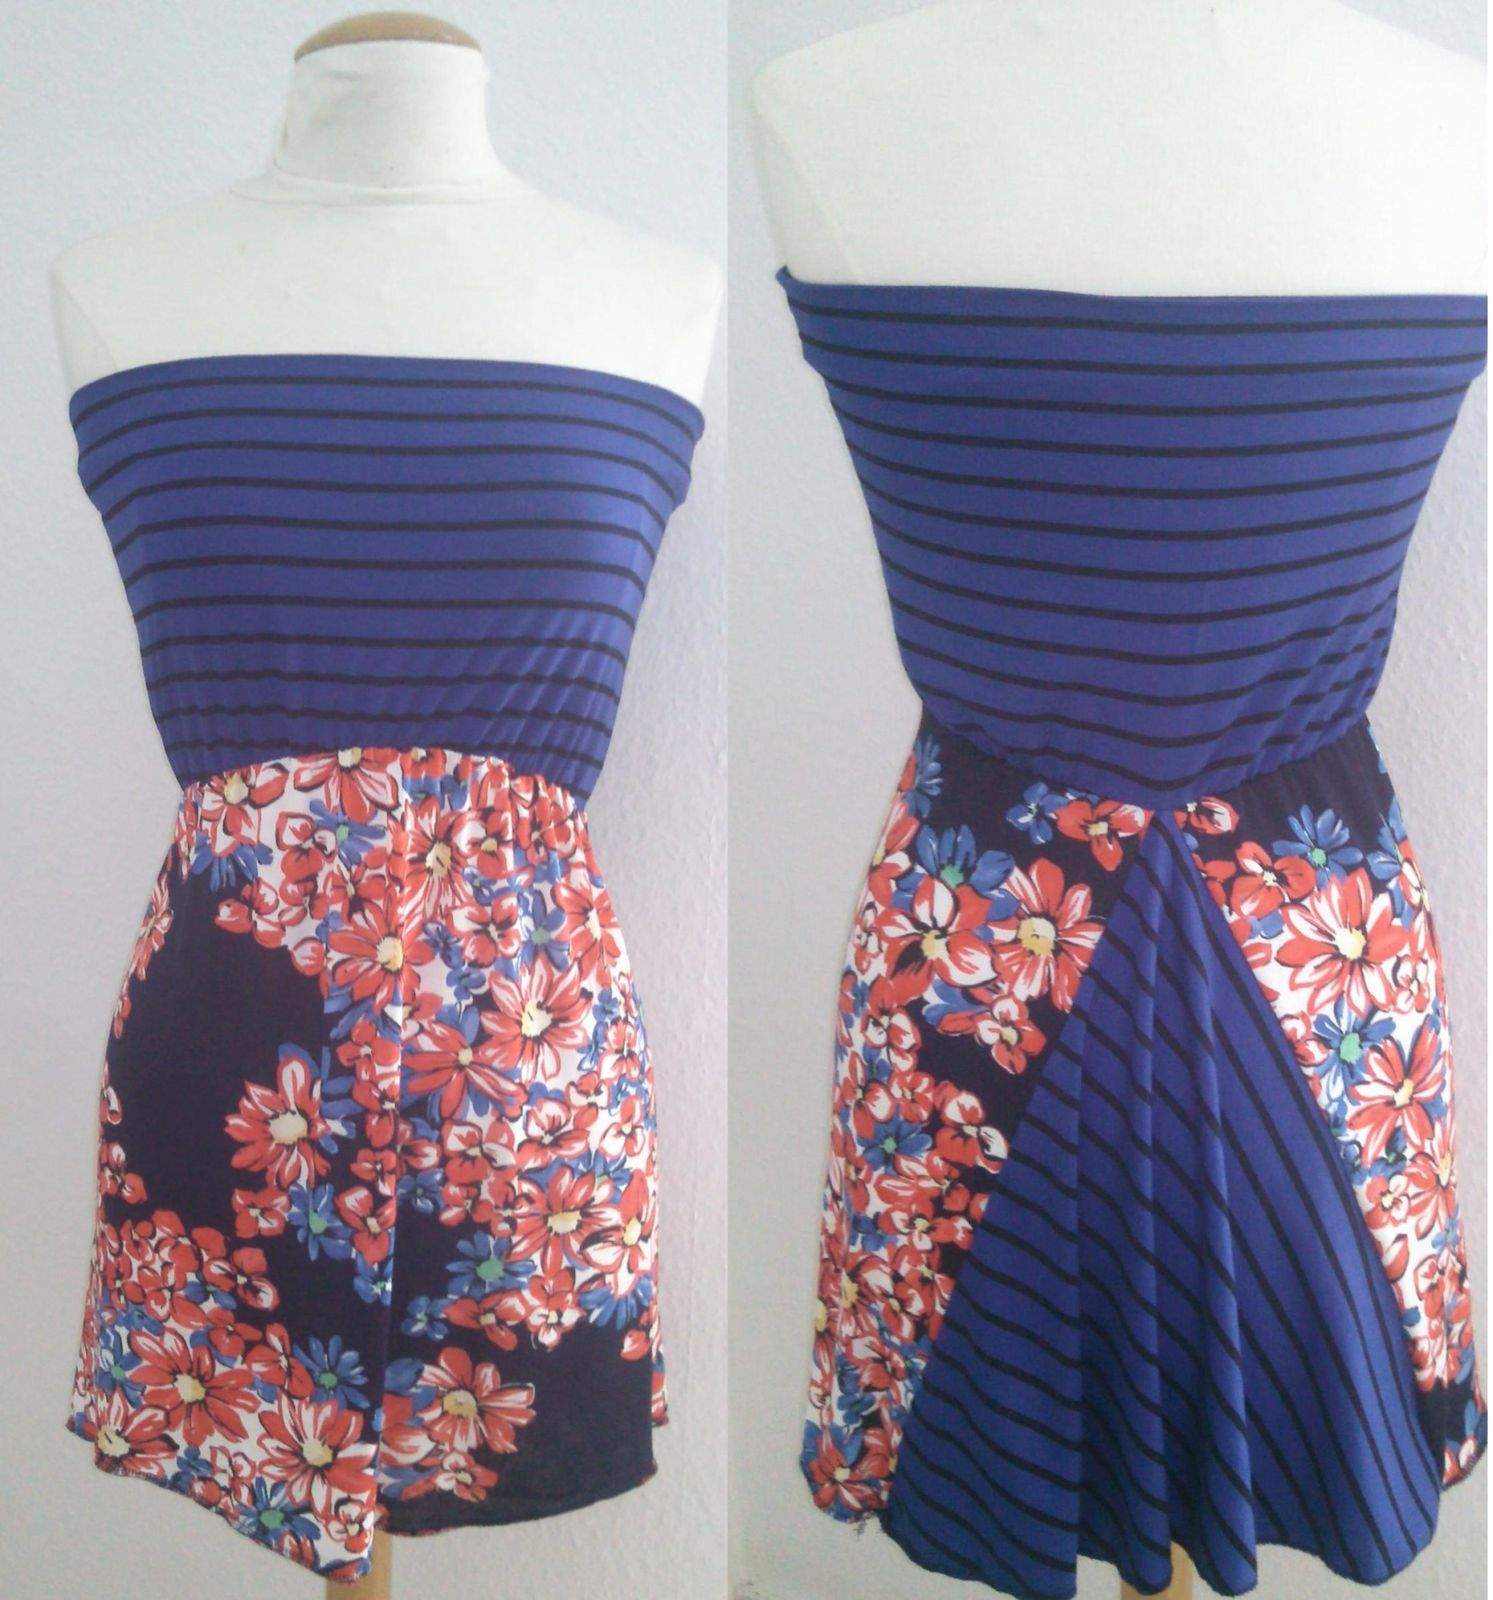 5fbb298584d66 Robe bustier - beliza.couture.over-blog.com